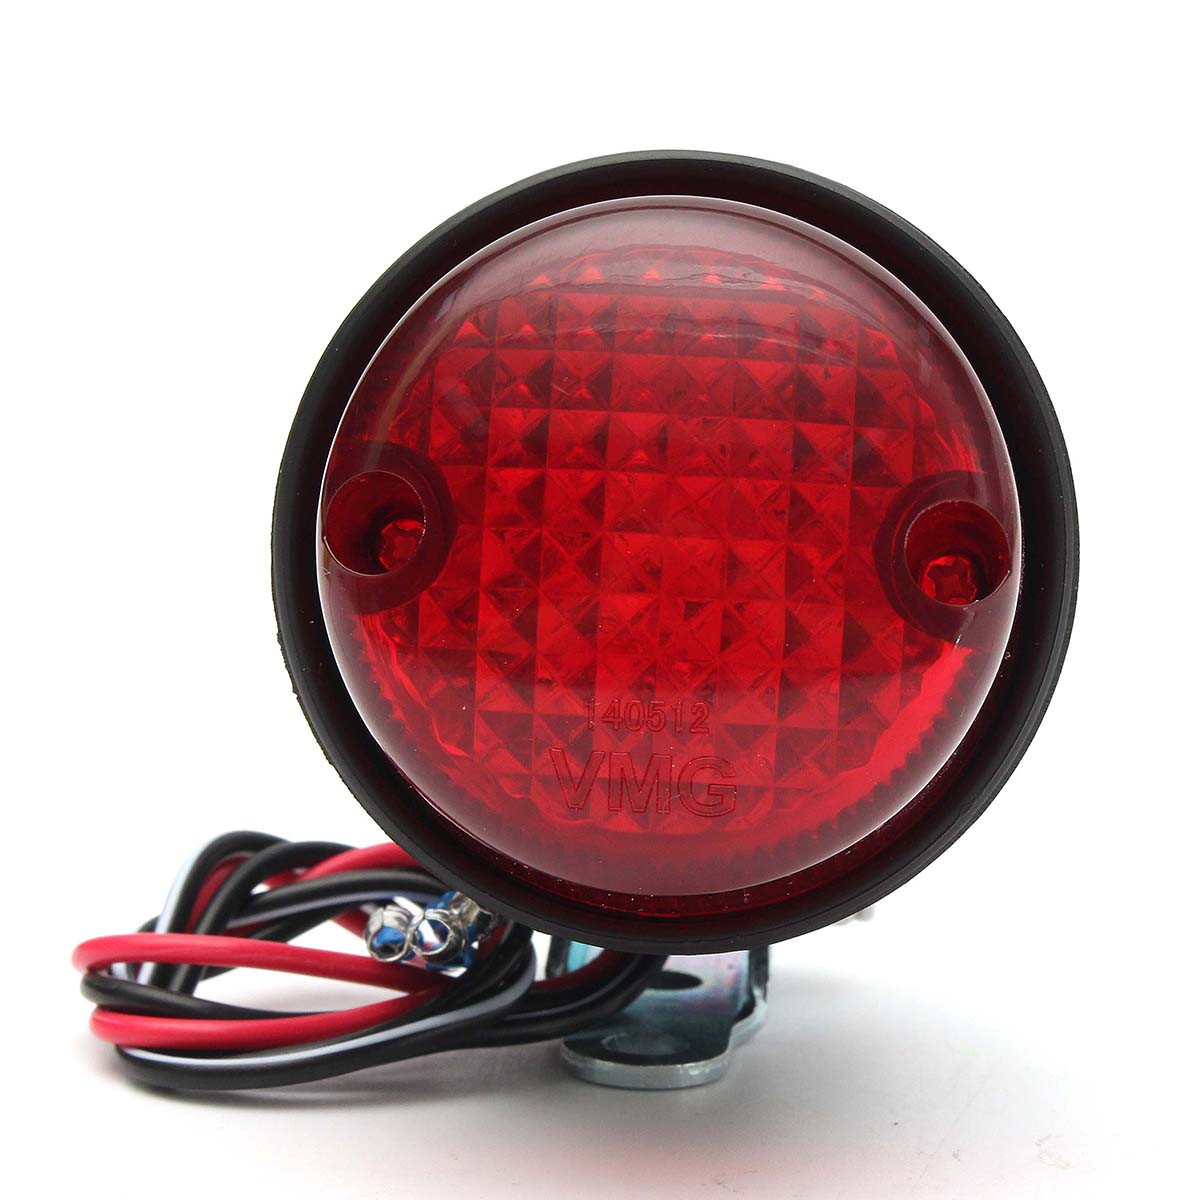 Wiring Brake Light Motorcycle